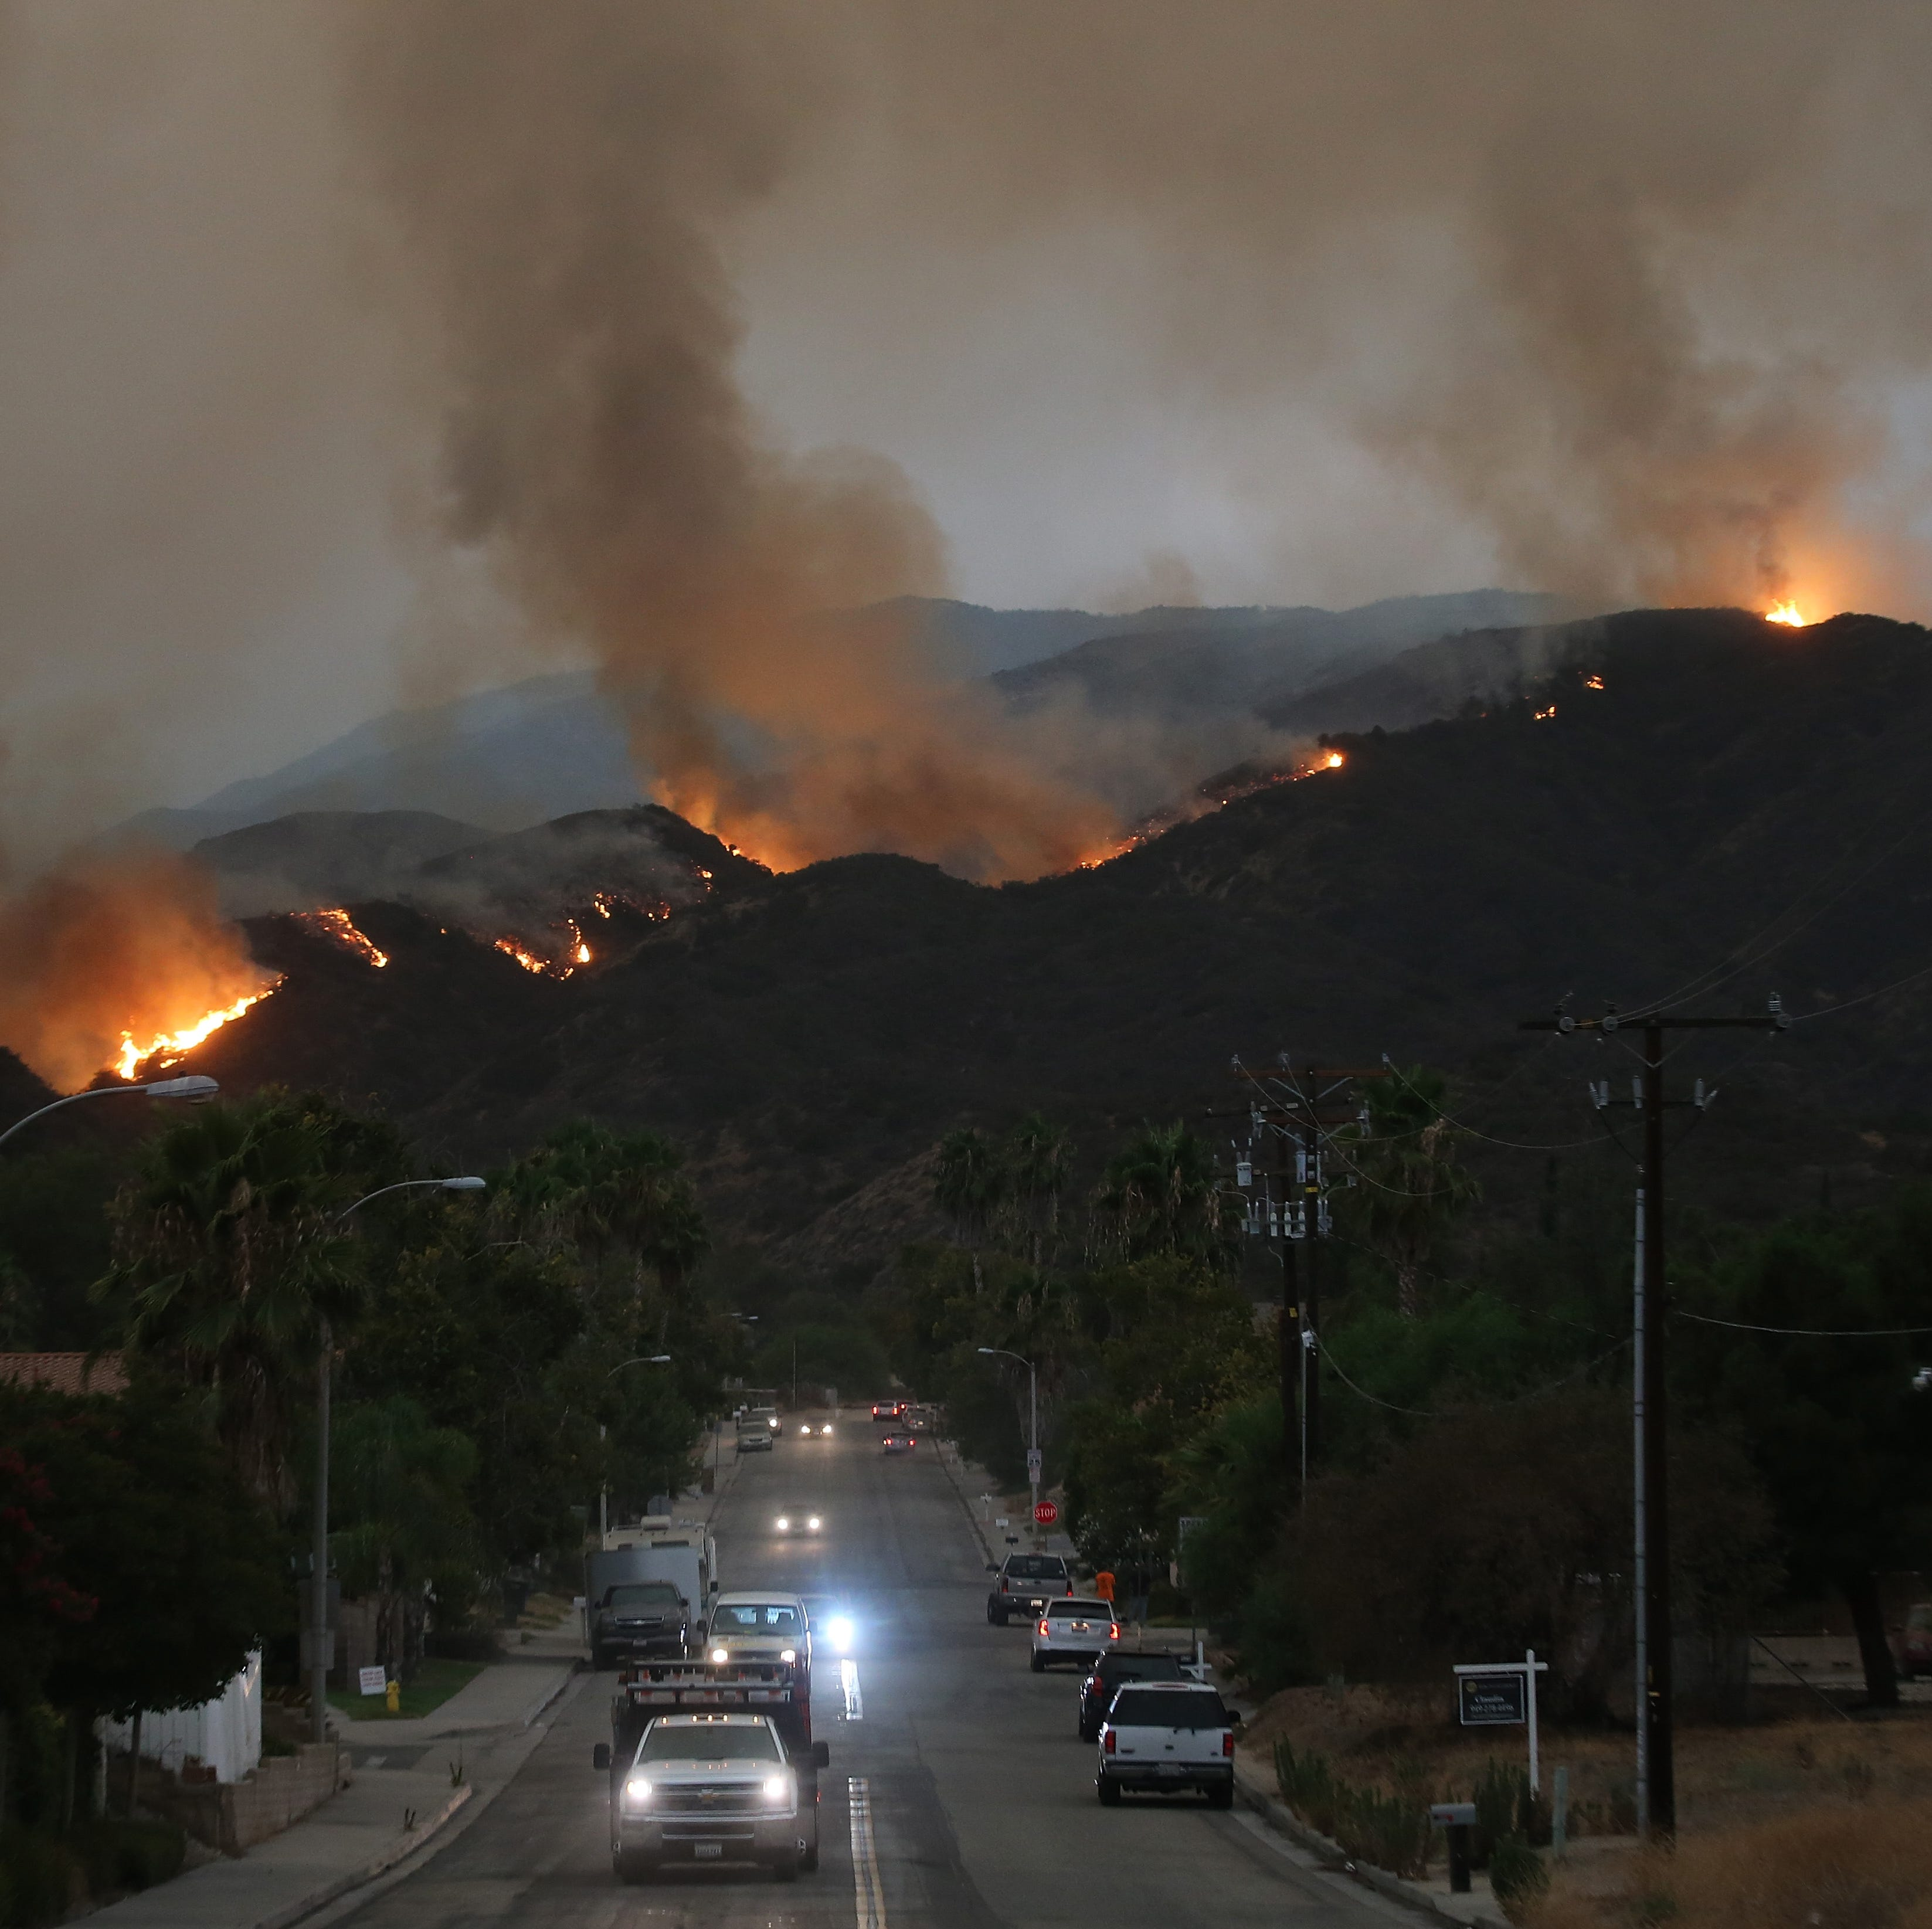 Mandatory evacuations lifted for most neighborhoods near Holy Fire burn scar